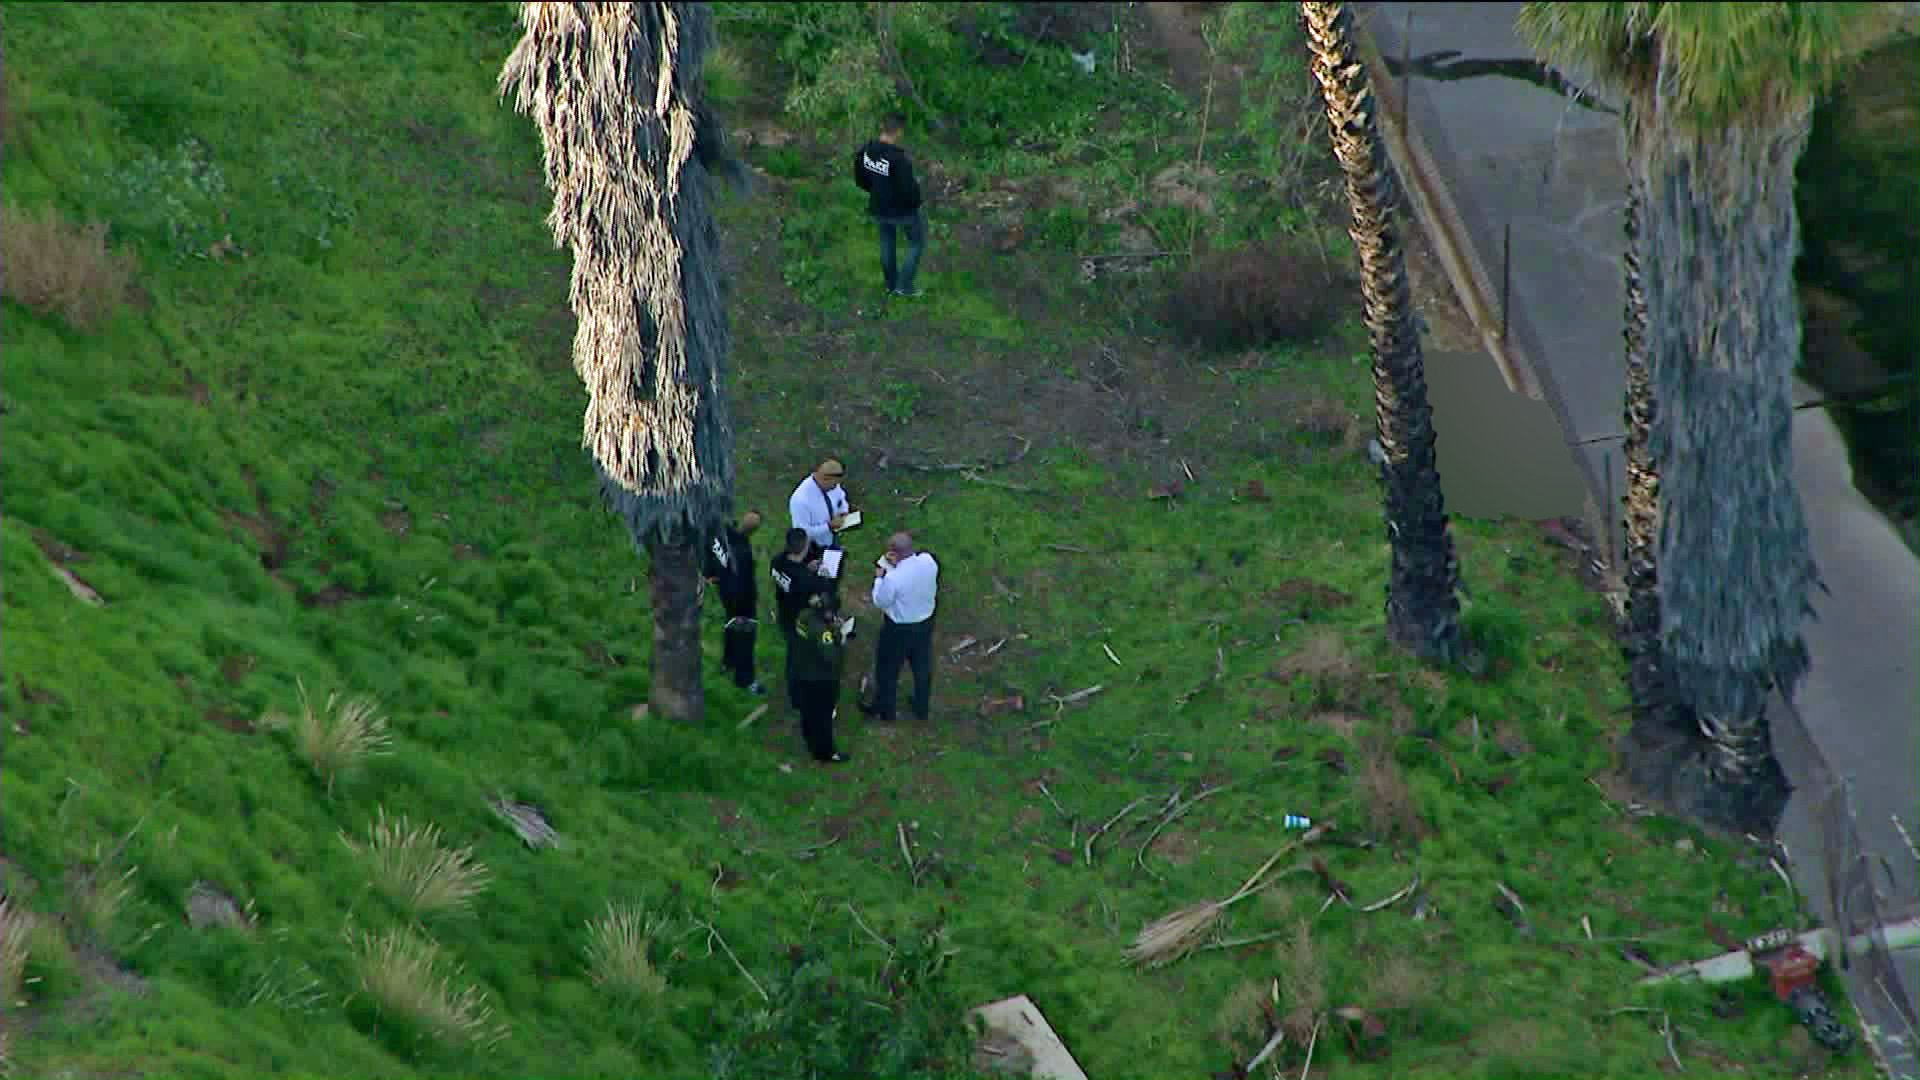 Authorities investigate the circumstances the death of a woman who was found near Almansor Park in Alhambra on Jan. 17, 2020. (Credit: KTLA)